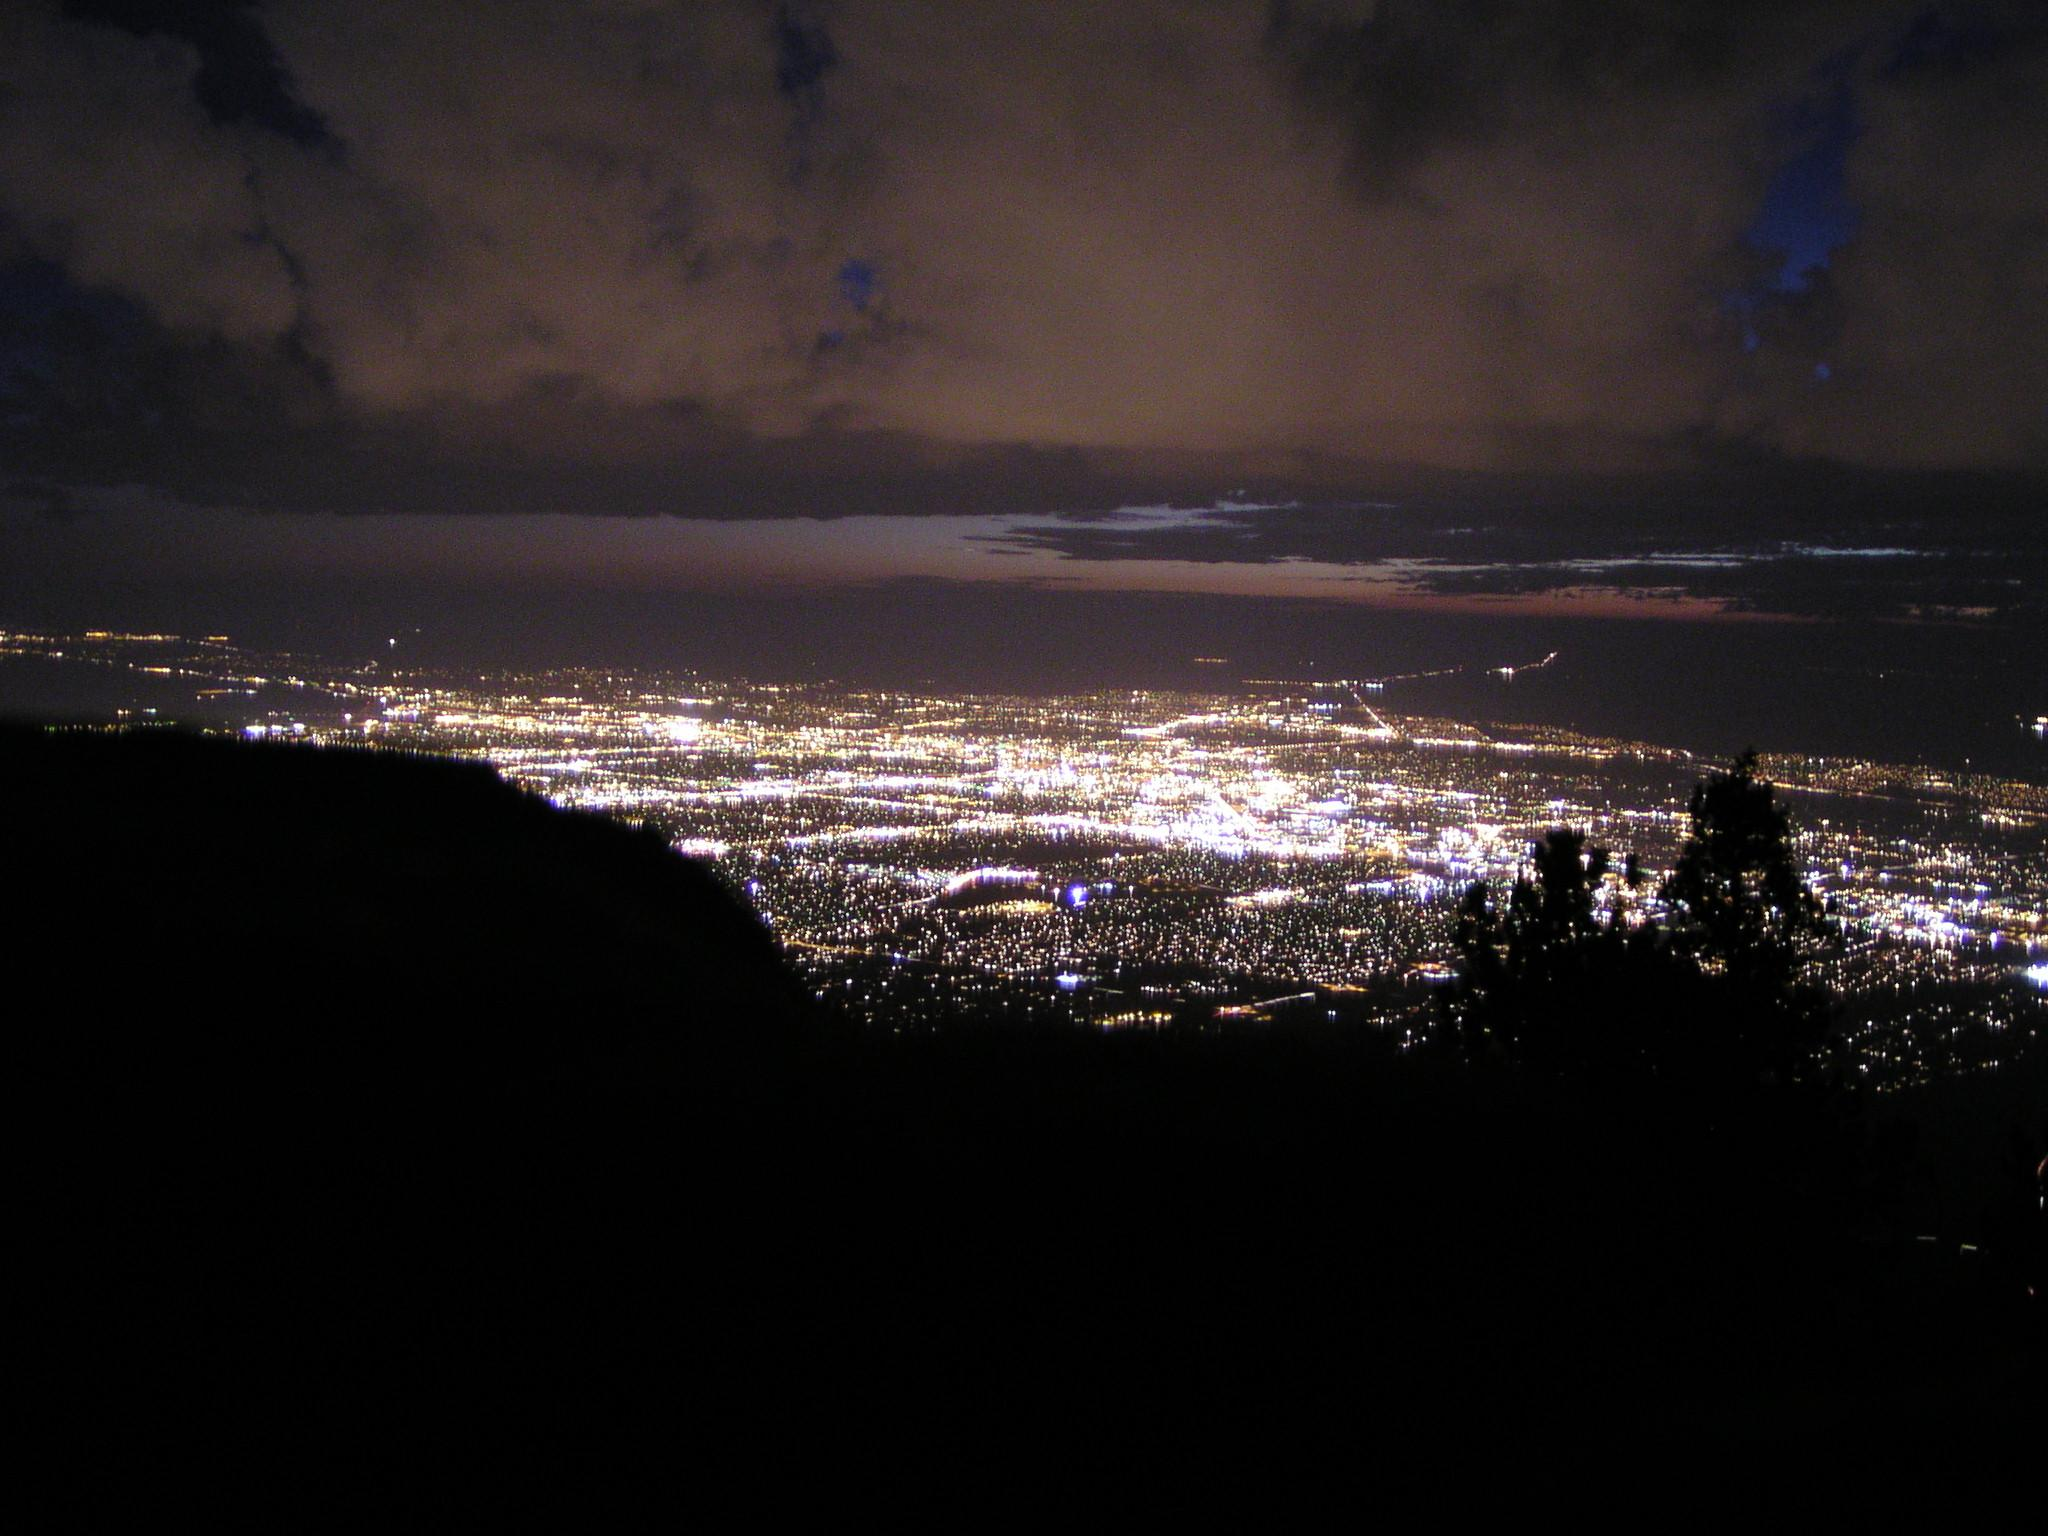 Using the flash to get the nearby tree but the long exposure to get the city lights and clouds. [2048x1536] & Sandia Peak Albuquerque New Mexico - November 1 2003 azcodes.com